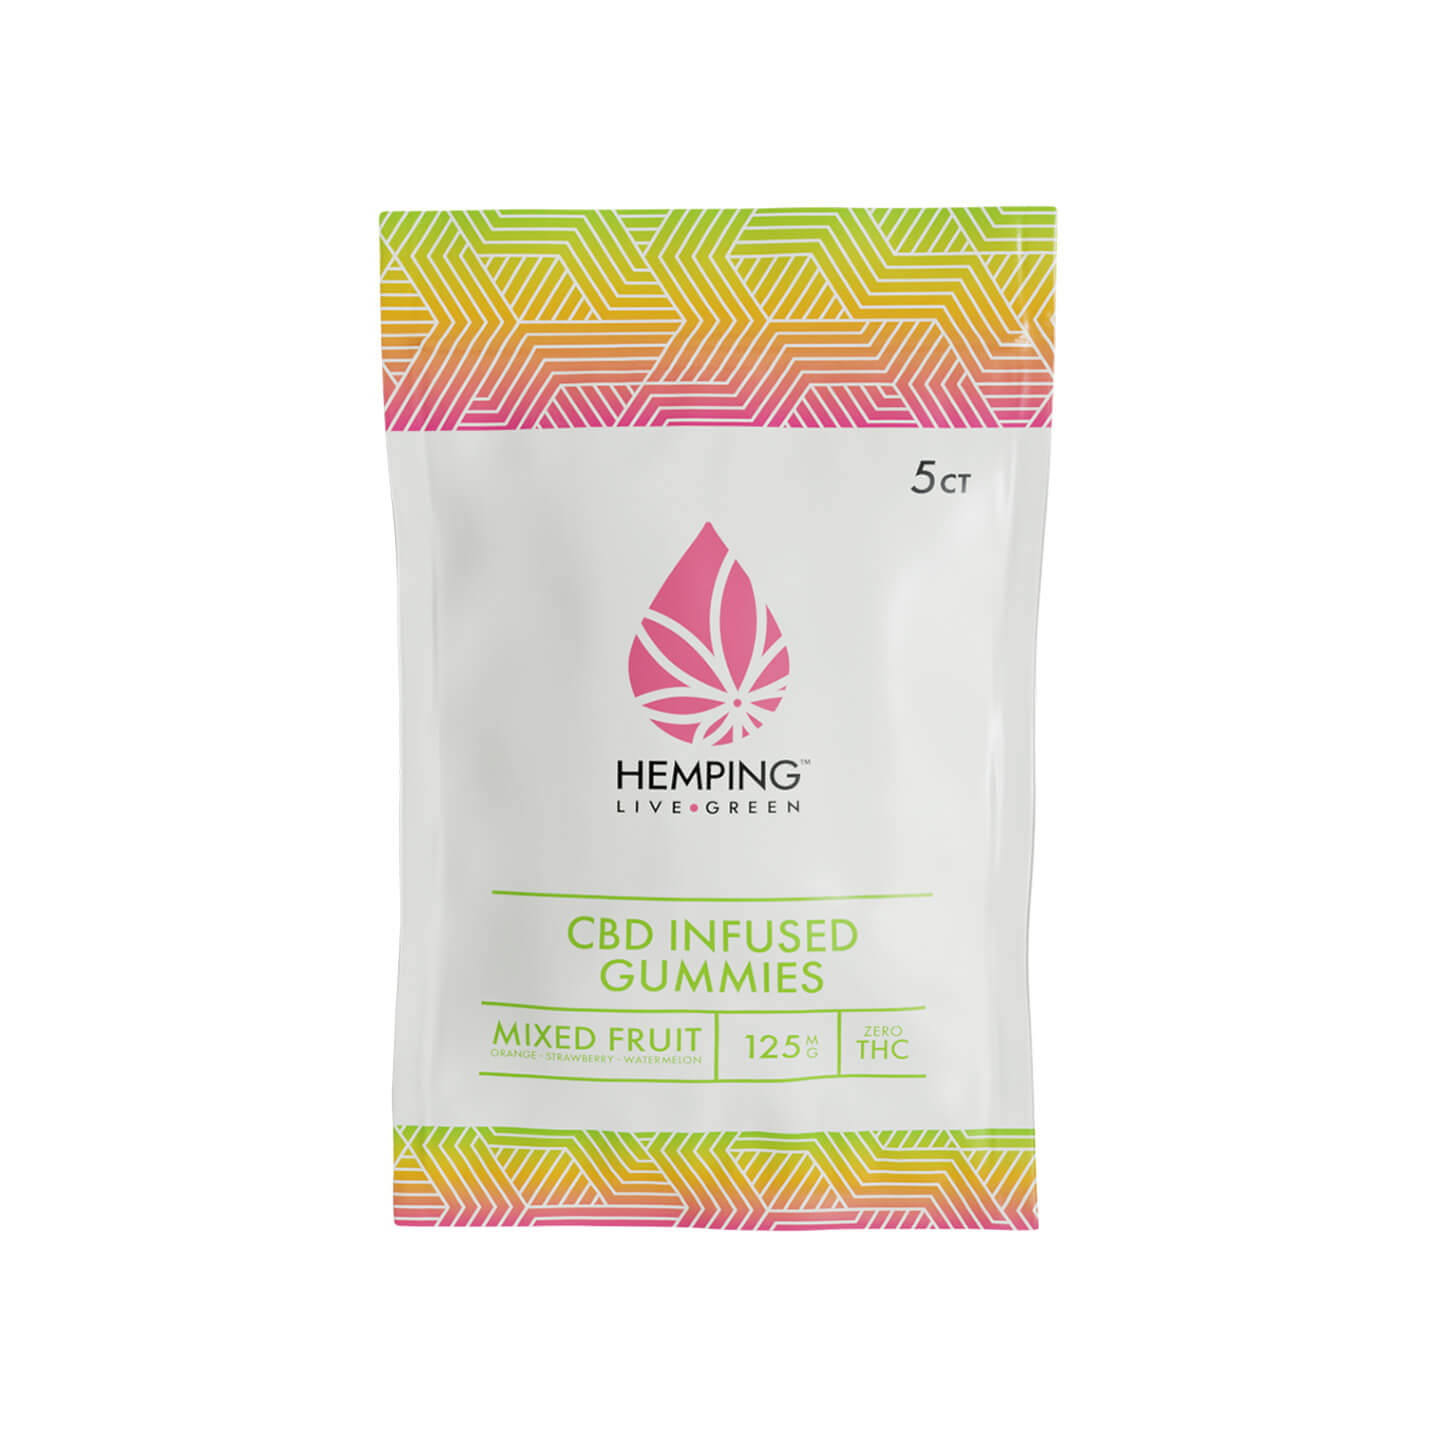 5ct Broad Spectrum CBD Infused Gummies 250mg (Mixed Fruit)